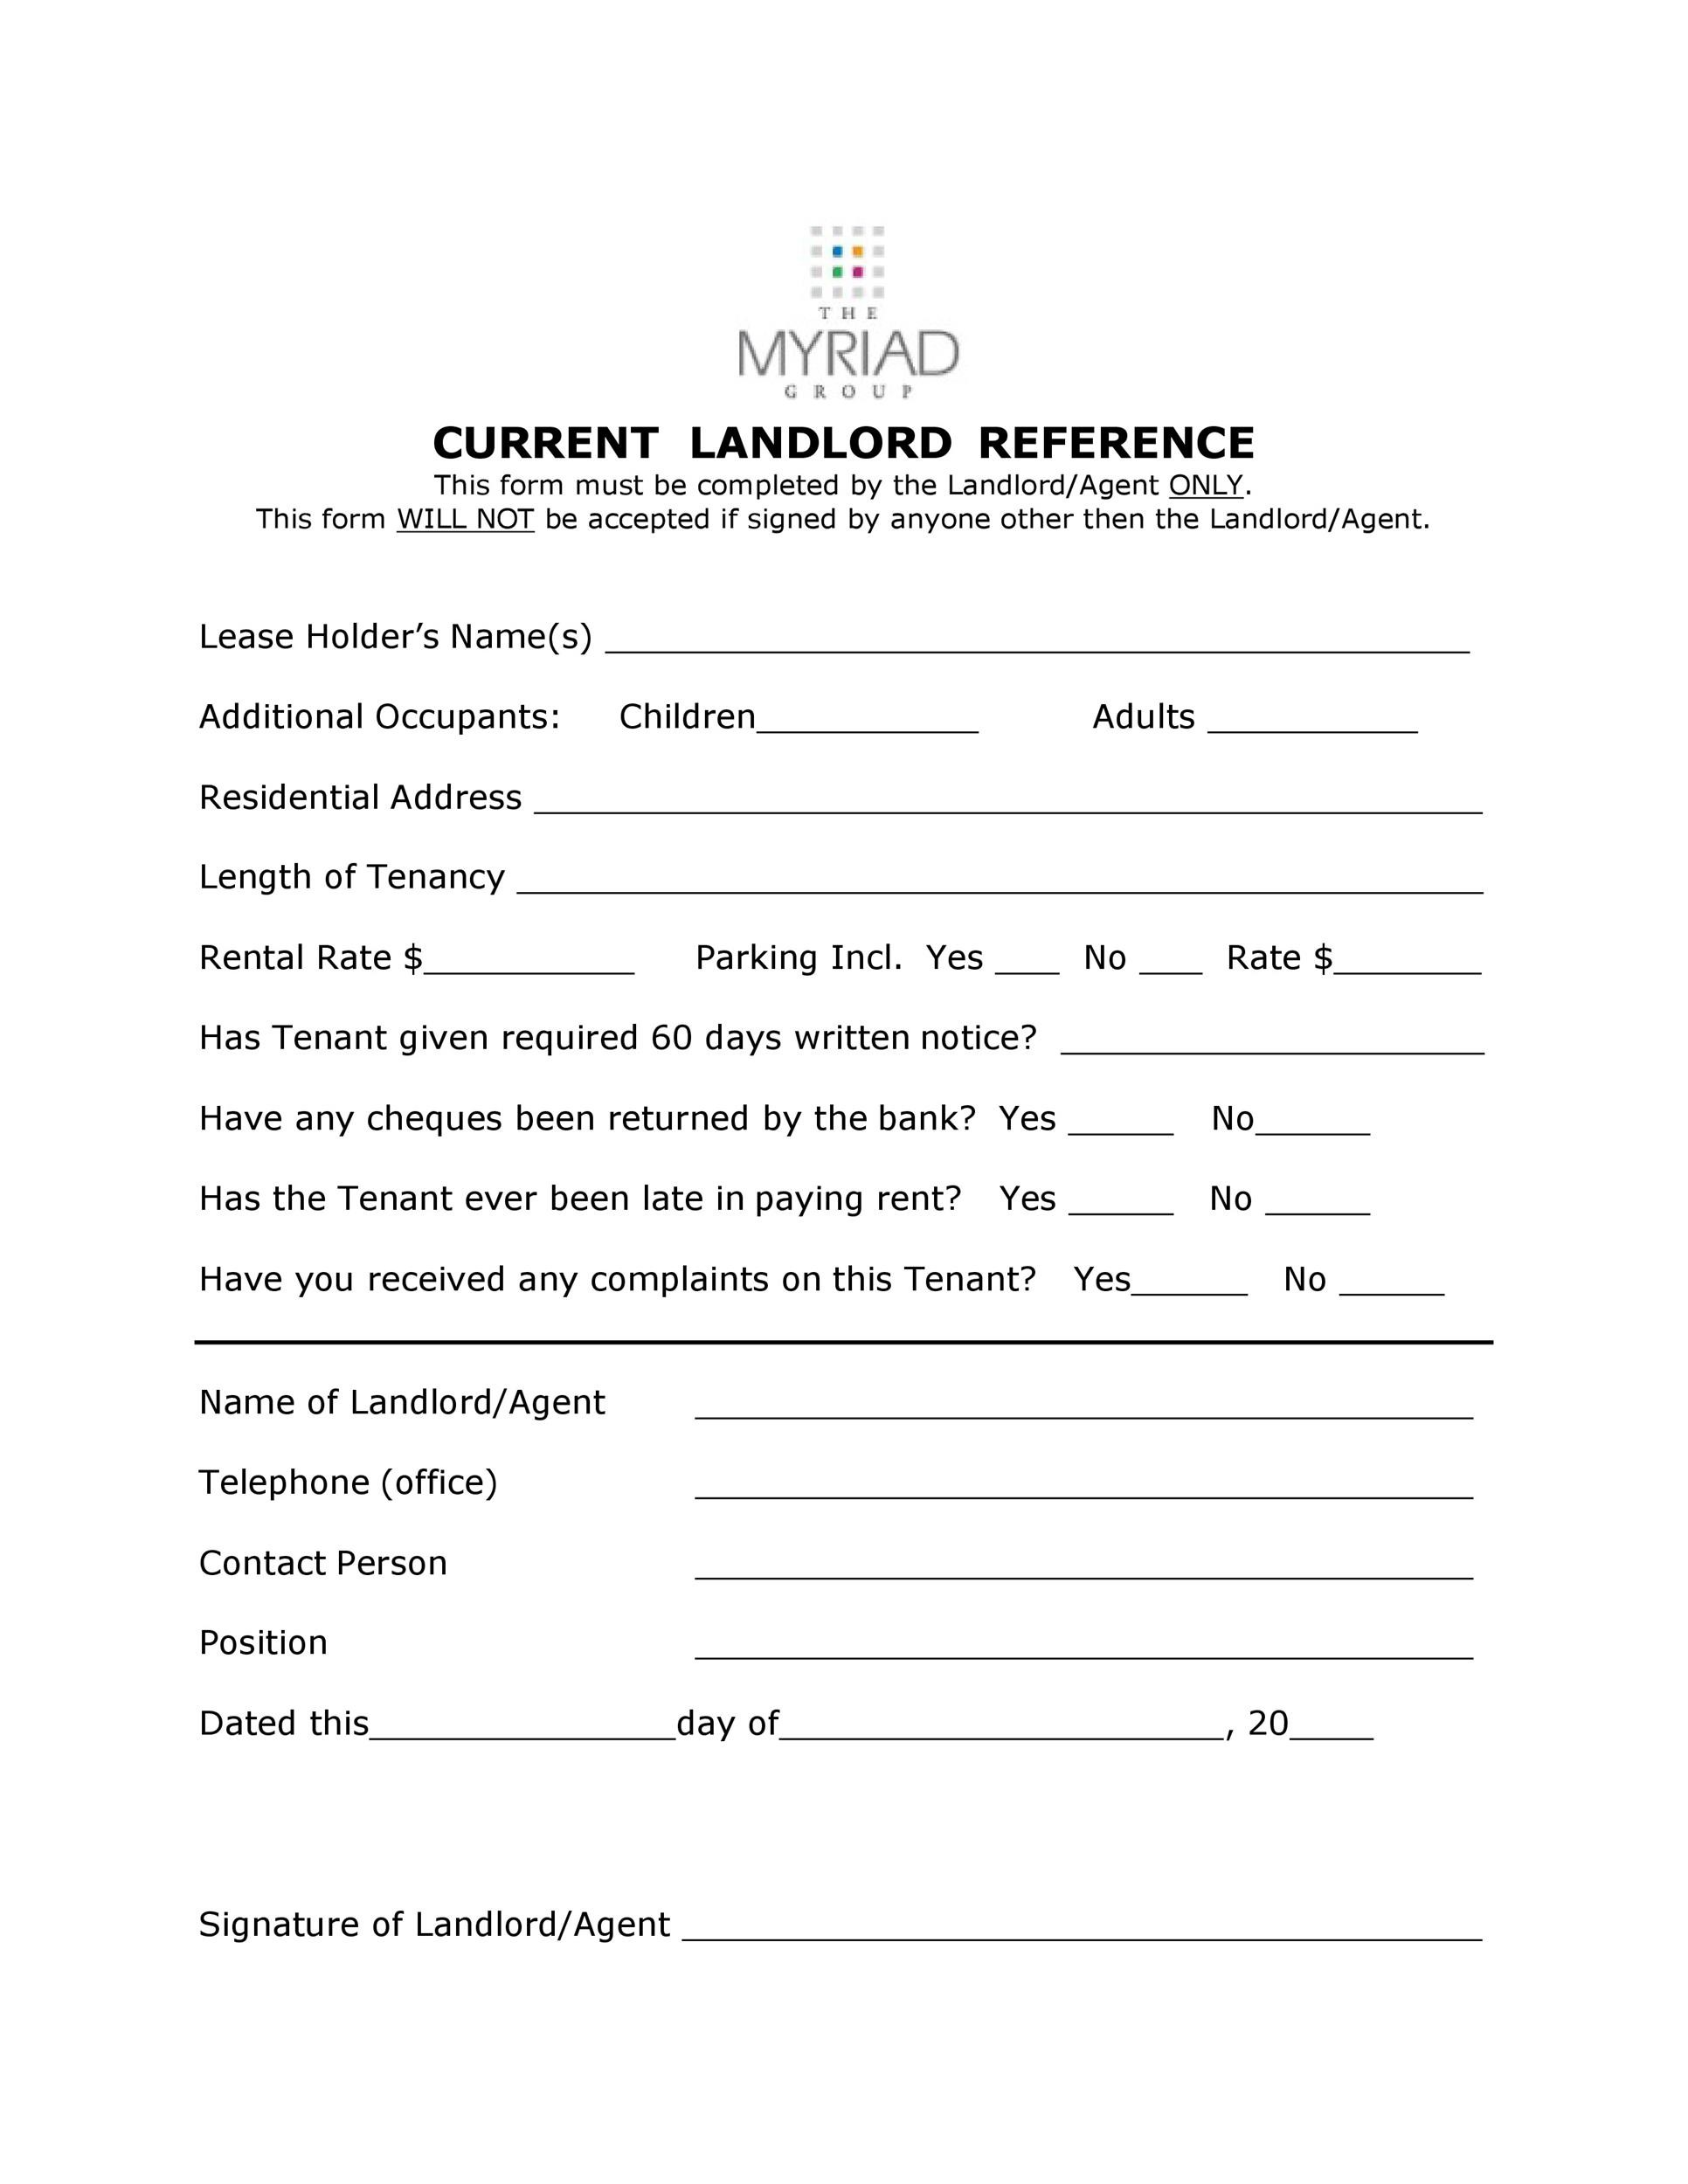 Free landlord reference letter 12